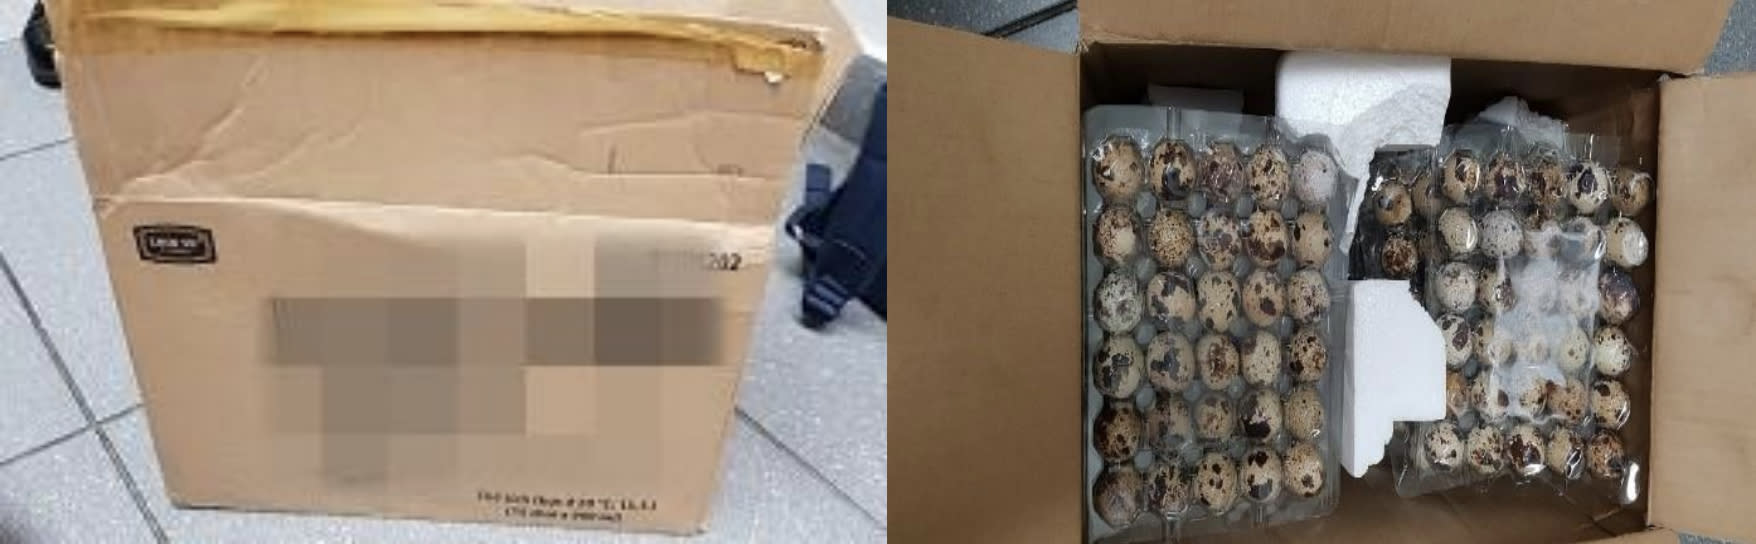 Woman fined $6,000 for smuggling 330 embryonated quail eggs into Singapore